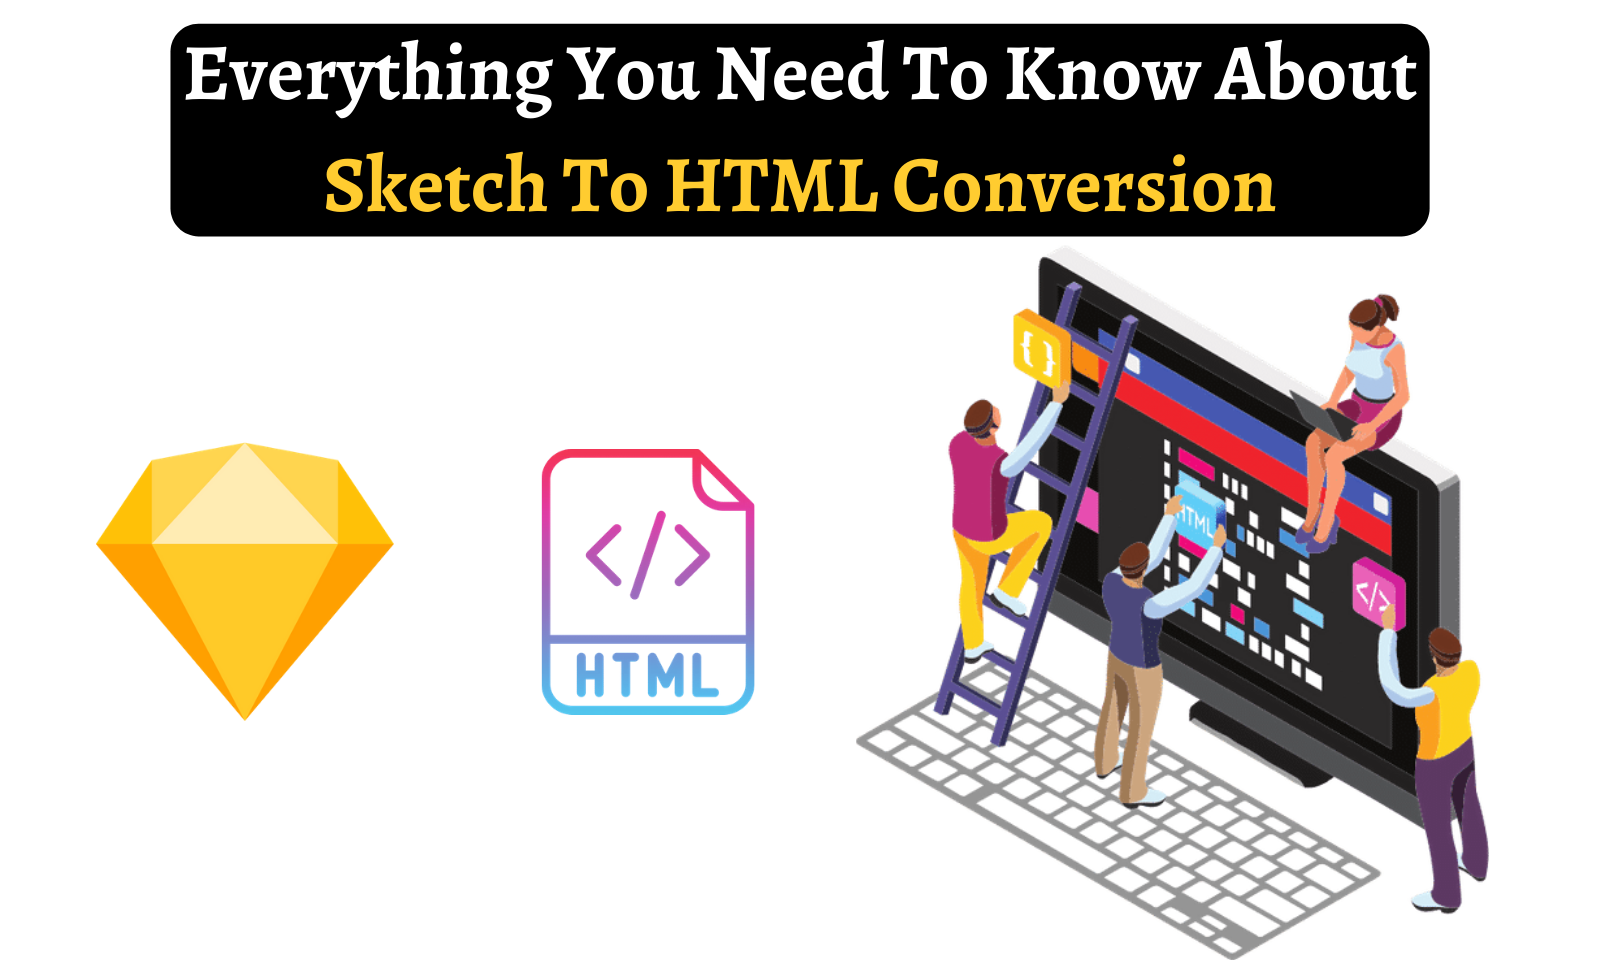 Everything You Need To Know About Sketch To HTML Conversion